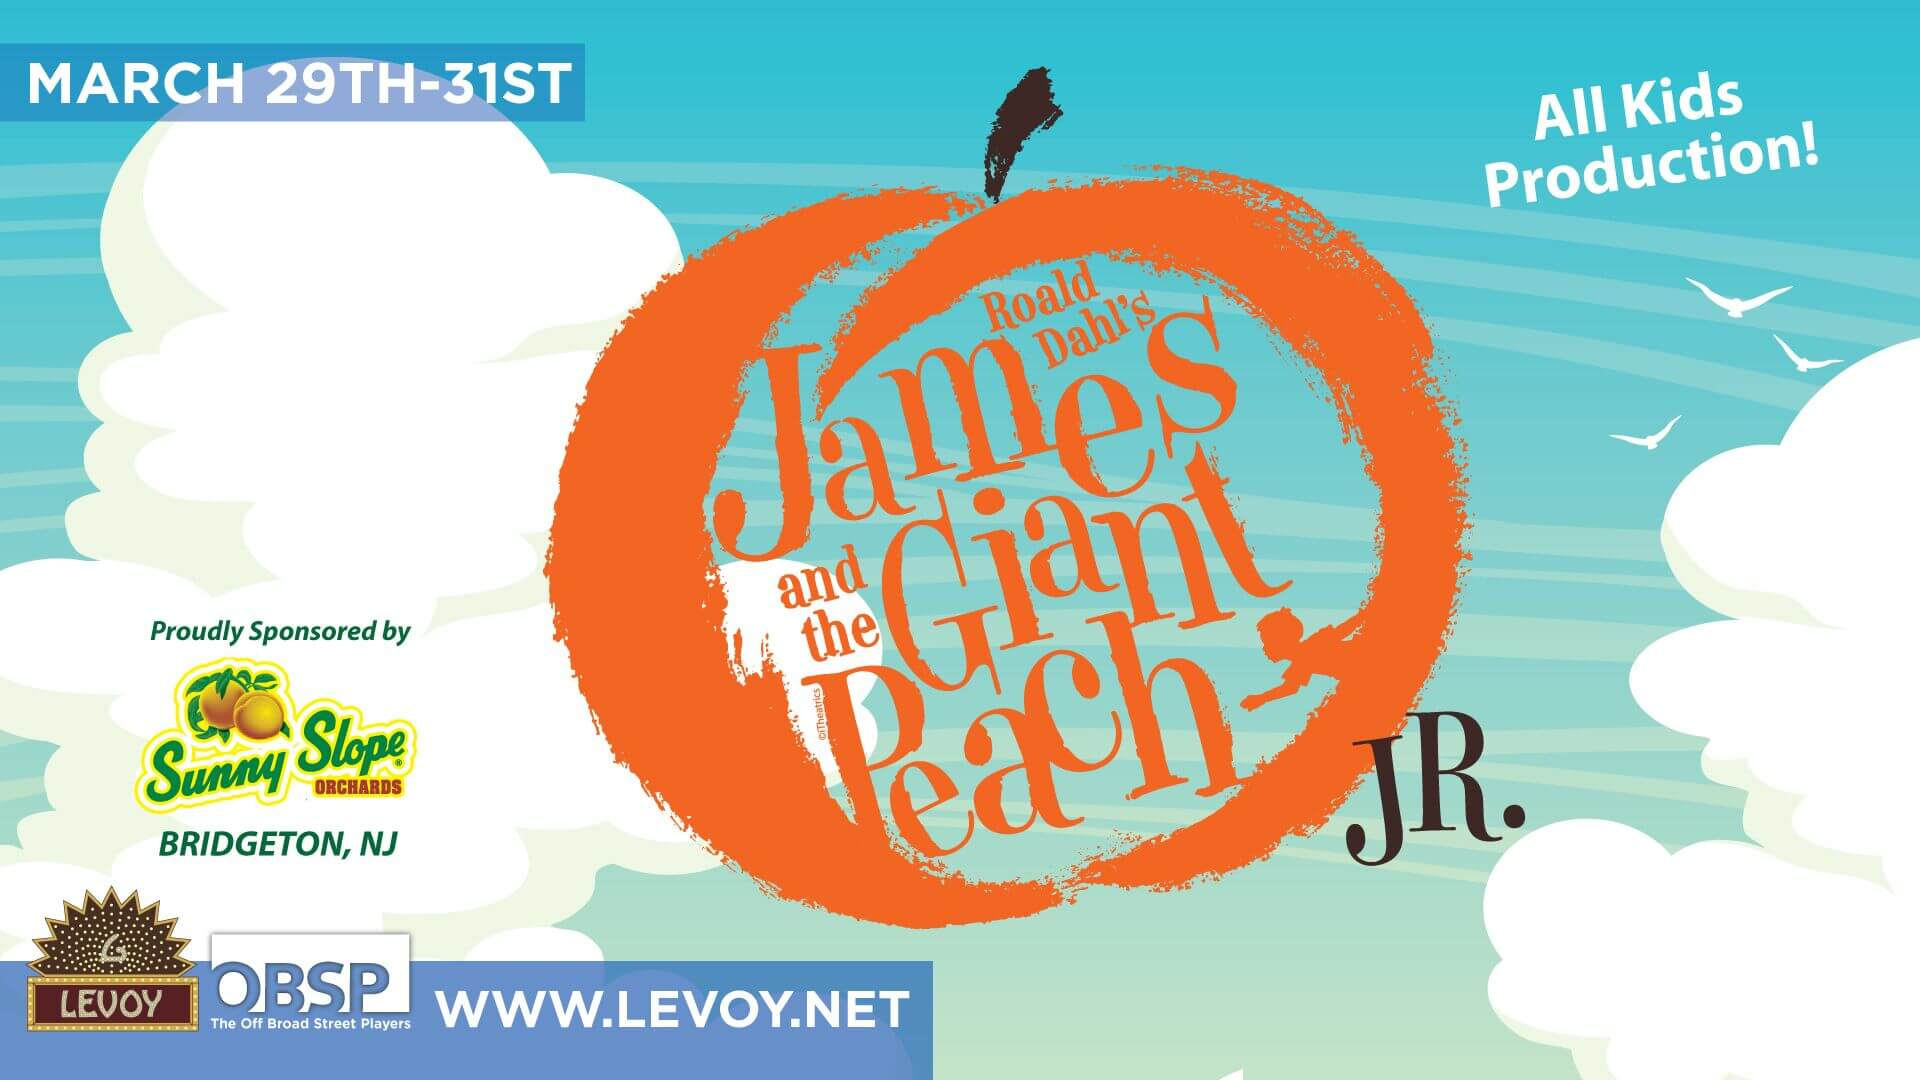 James And The Giant Peach Jr The Levoy Theatre